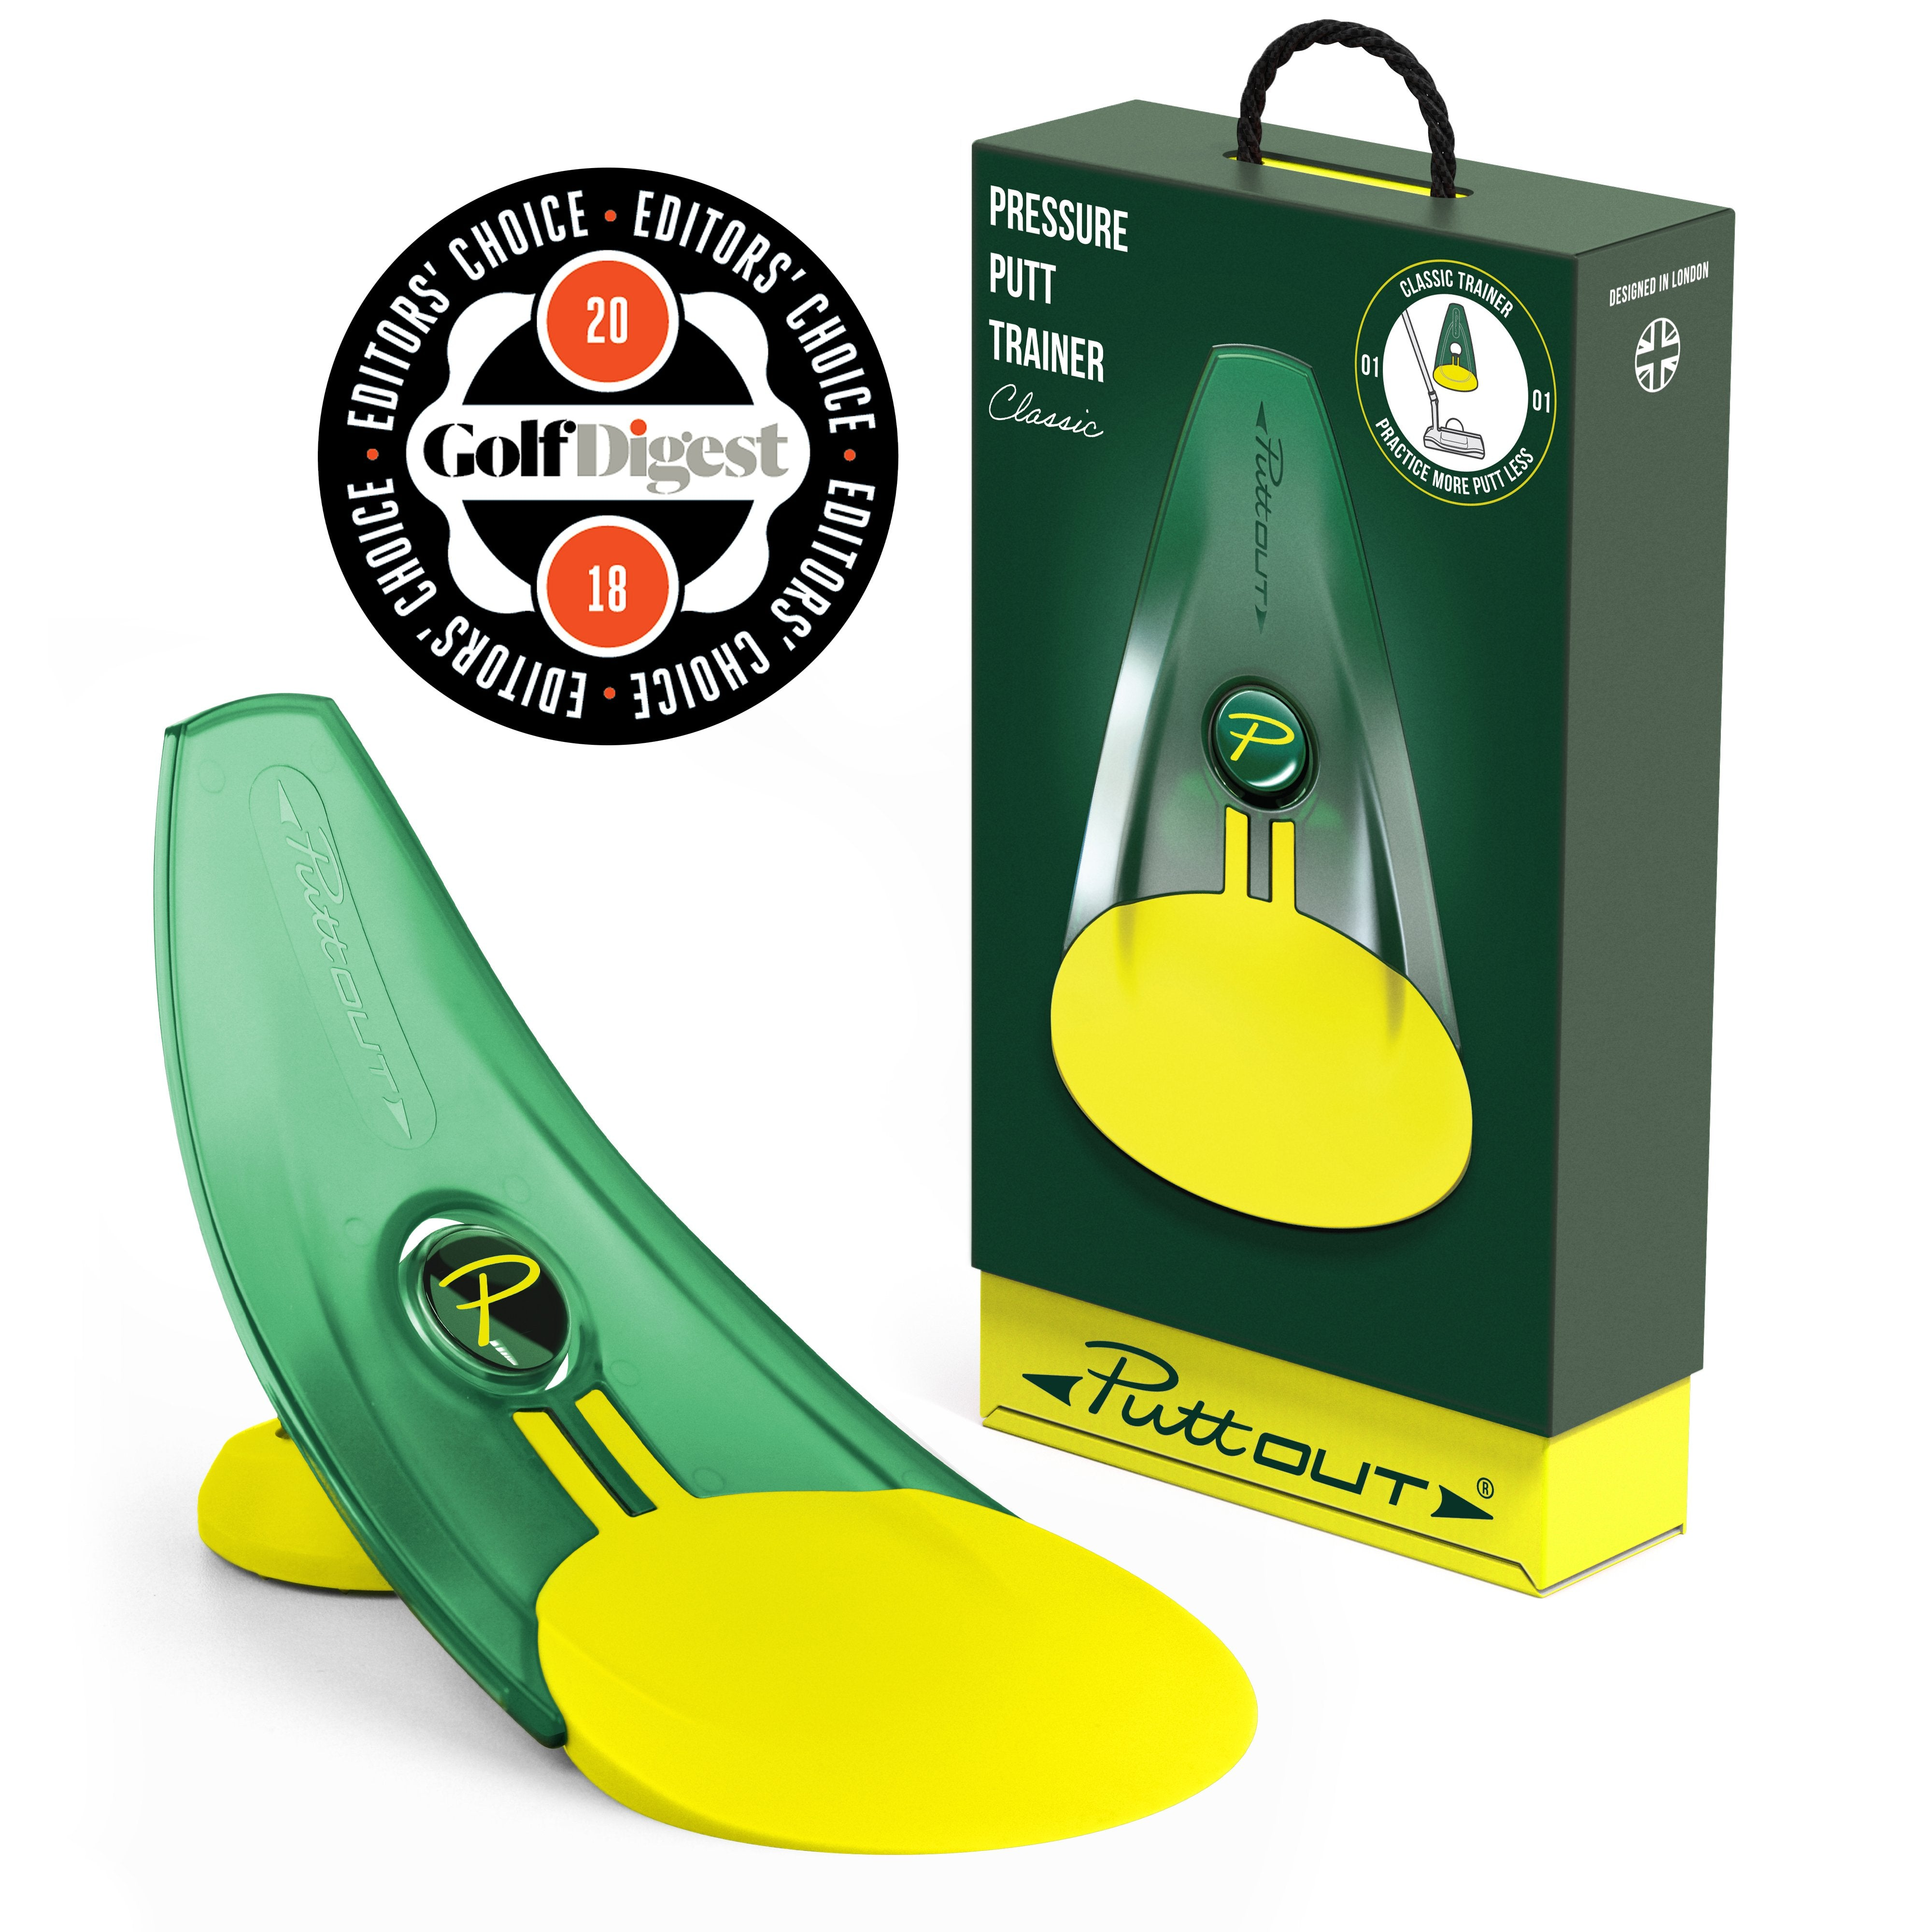 MASTERS EDITION PuttOut Pressure Trainer